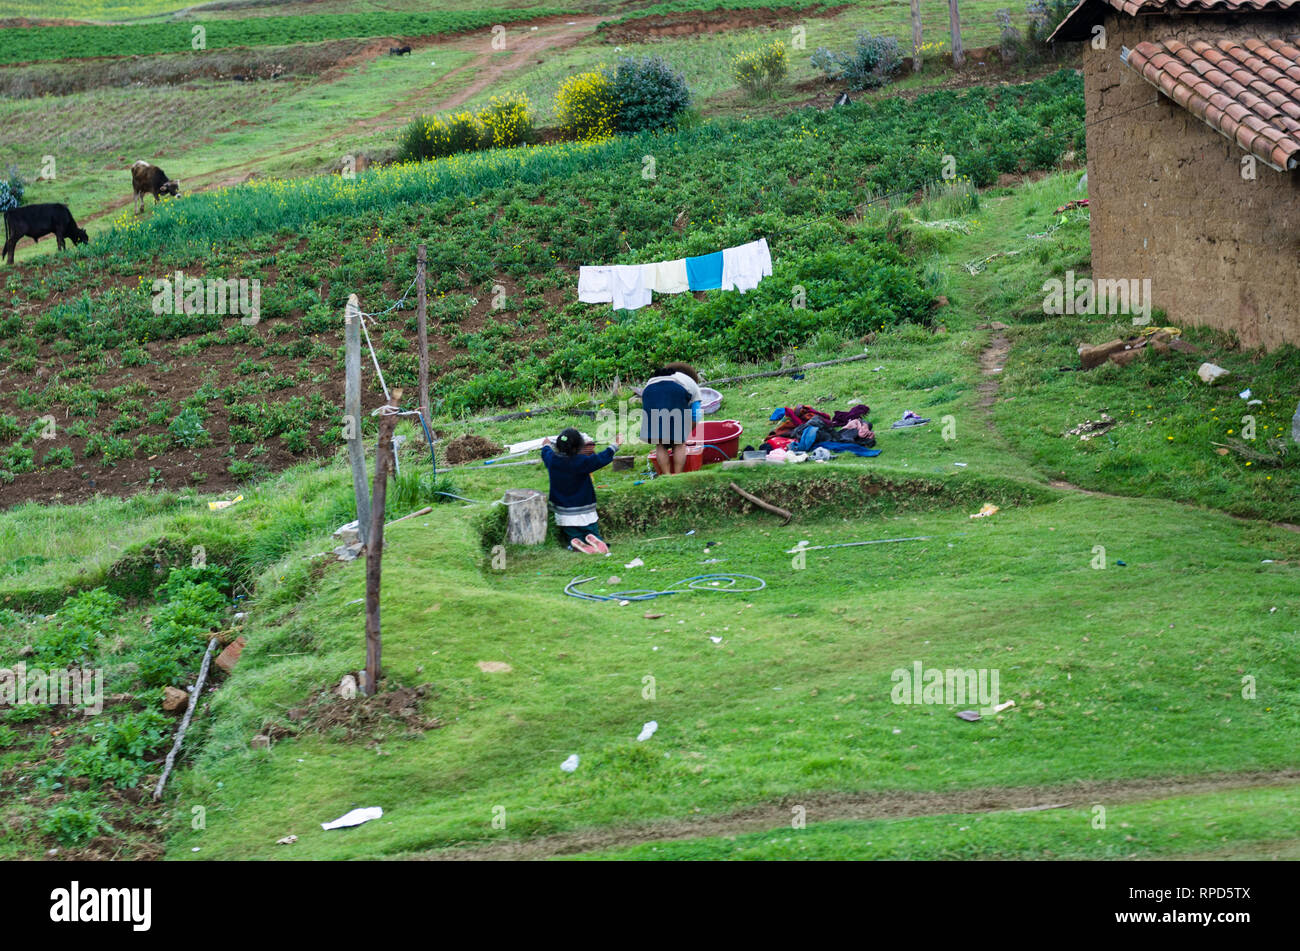 Cusco, Peru December 31th, 2018 : Mother and daughter washing clothes by hand, traditional customs of the city of Cusco in Peru - Stock Image